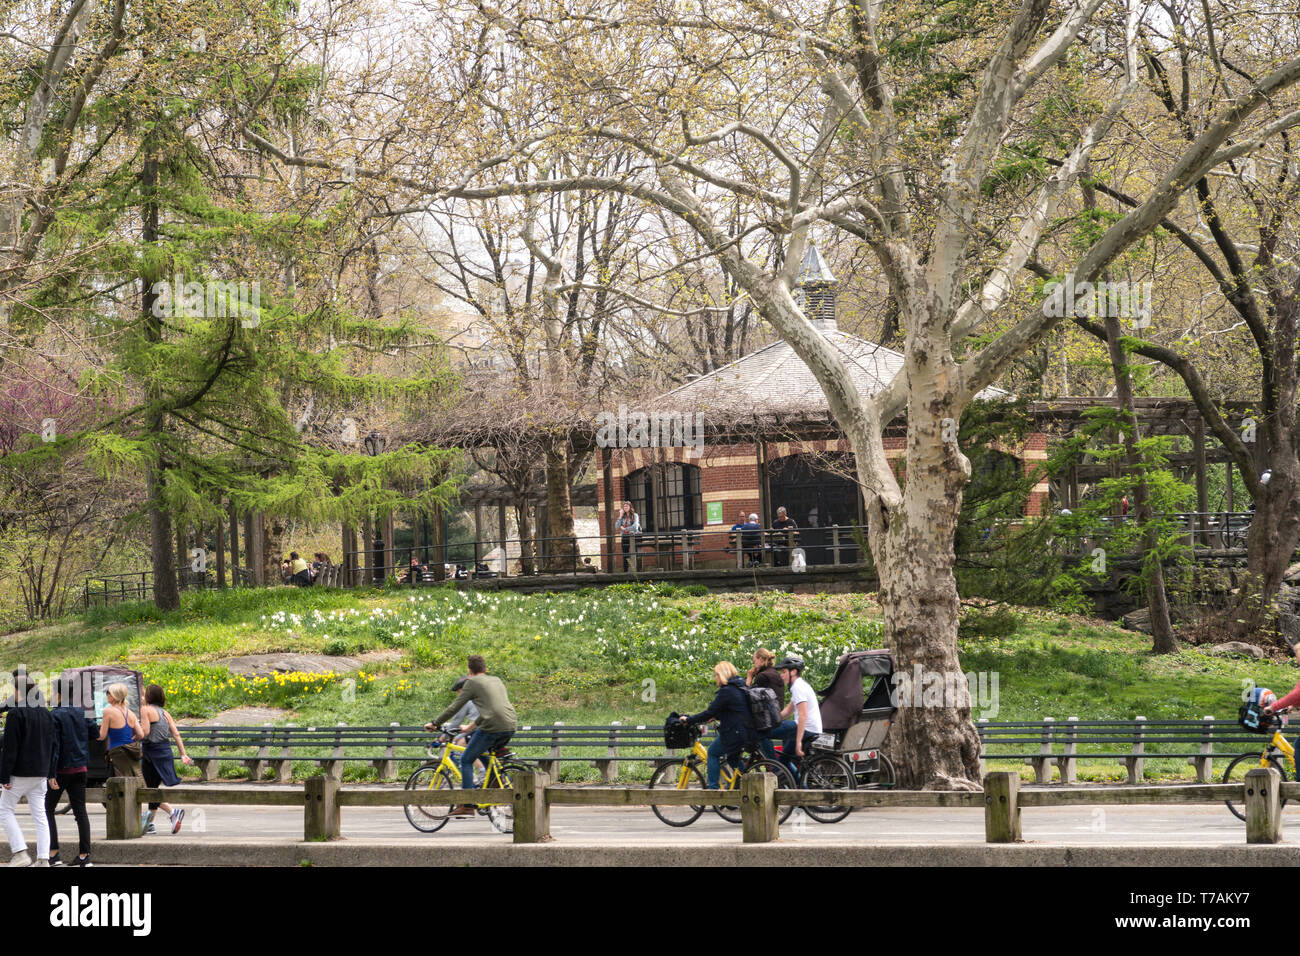 Central Park in the Springtime is very popular, NYC, USA Stock Photo